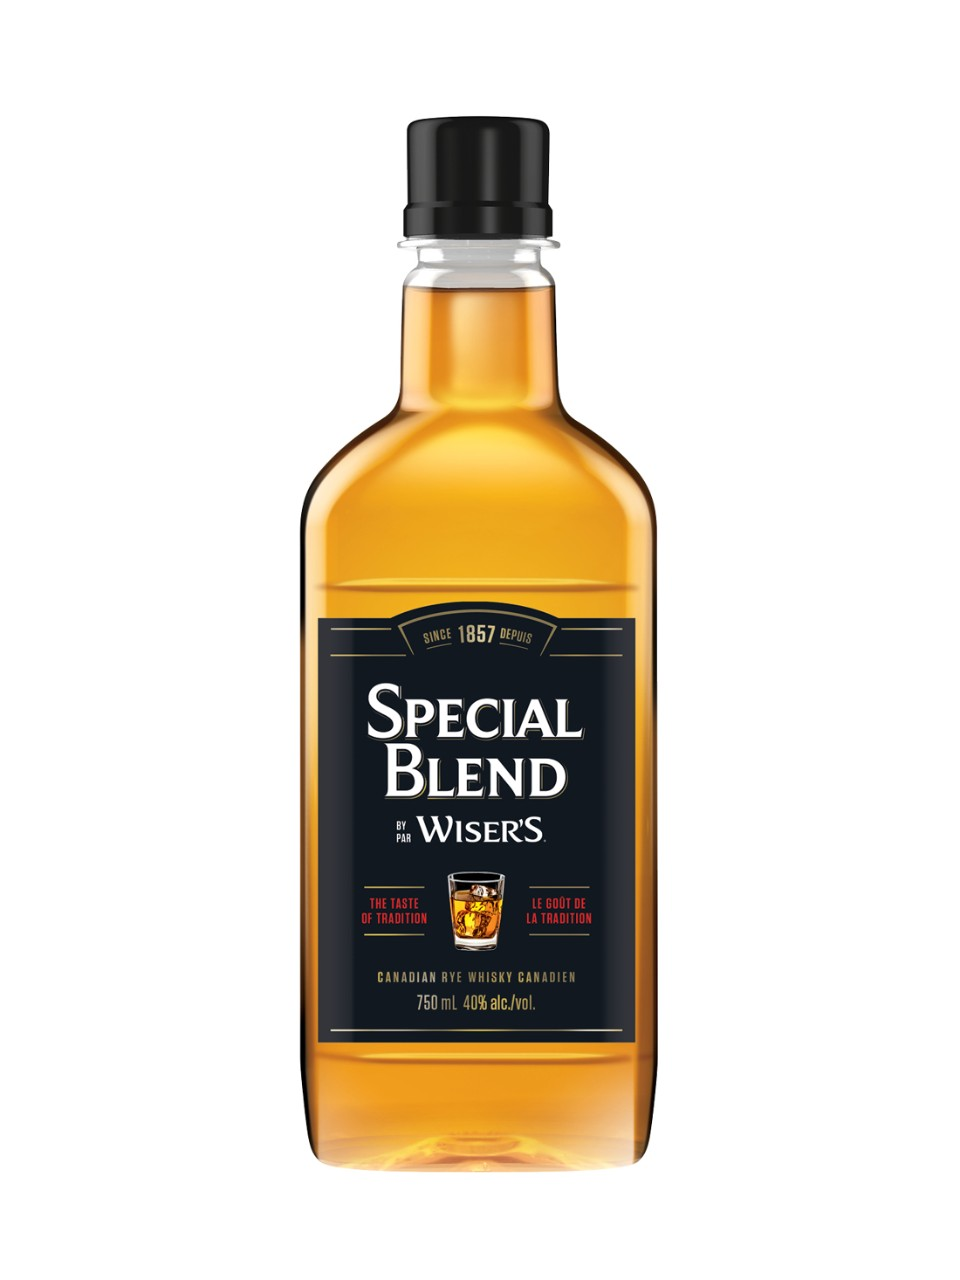 Wiser's Special Blend Whisky (PET) from LCBO